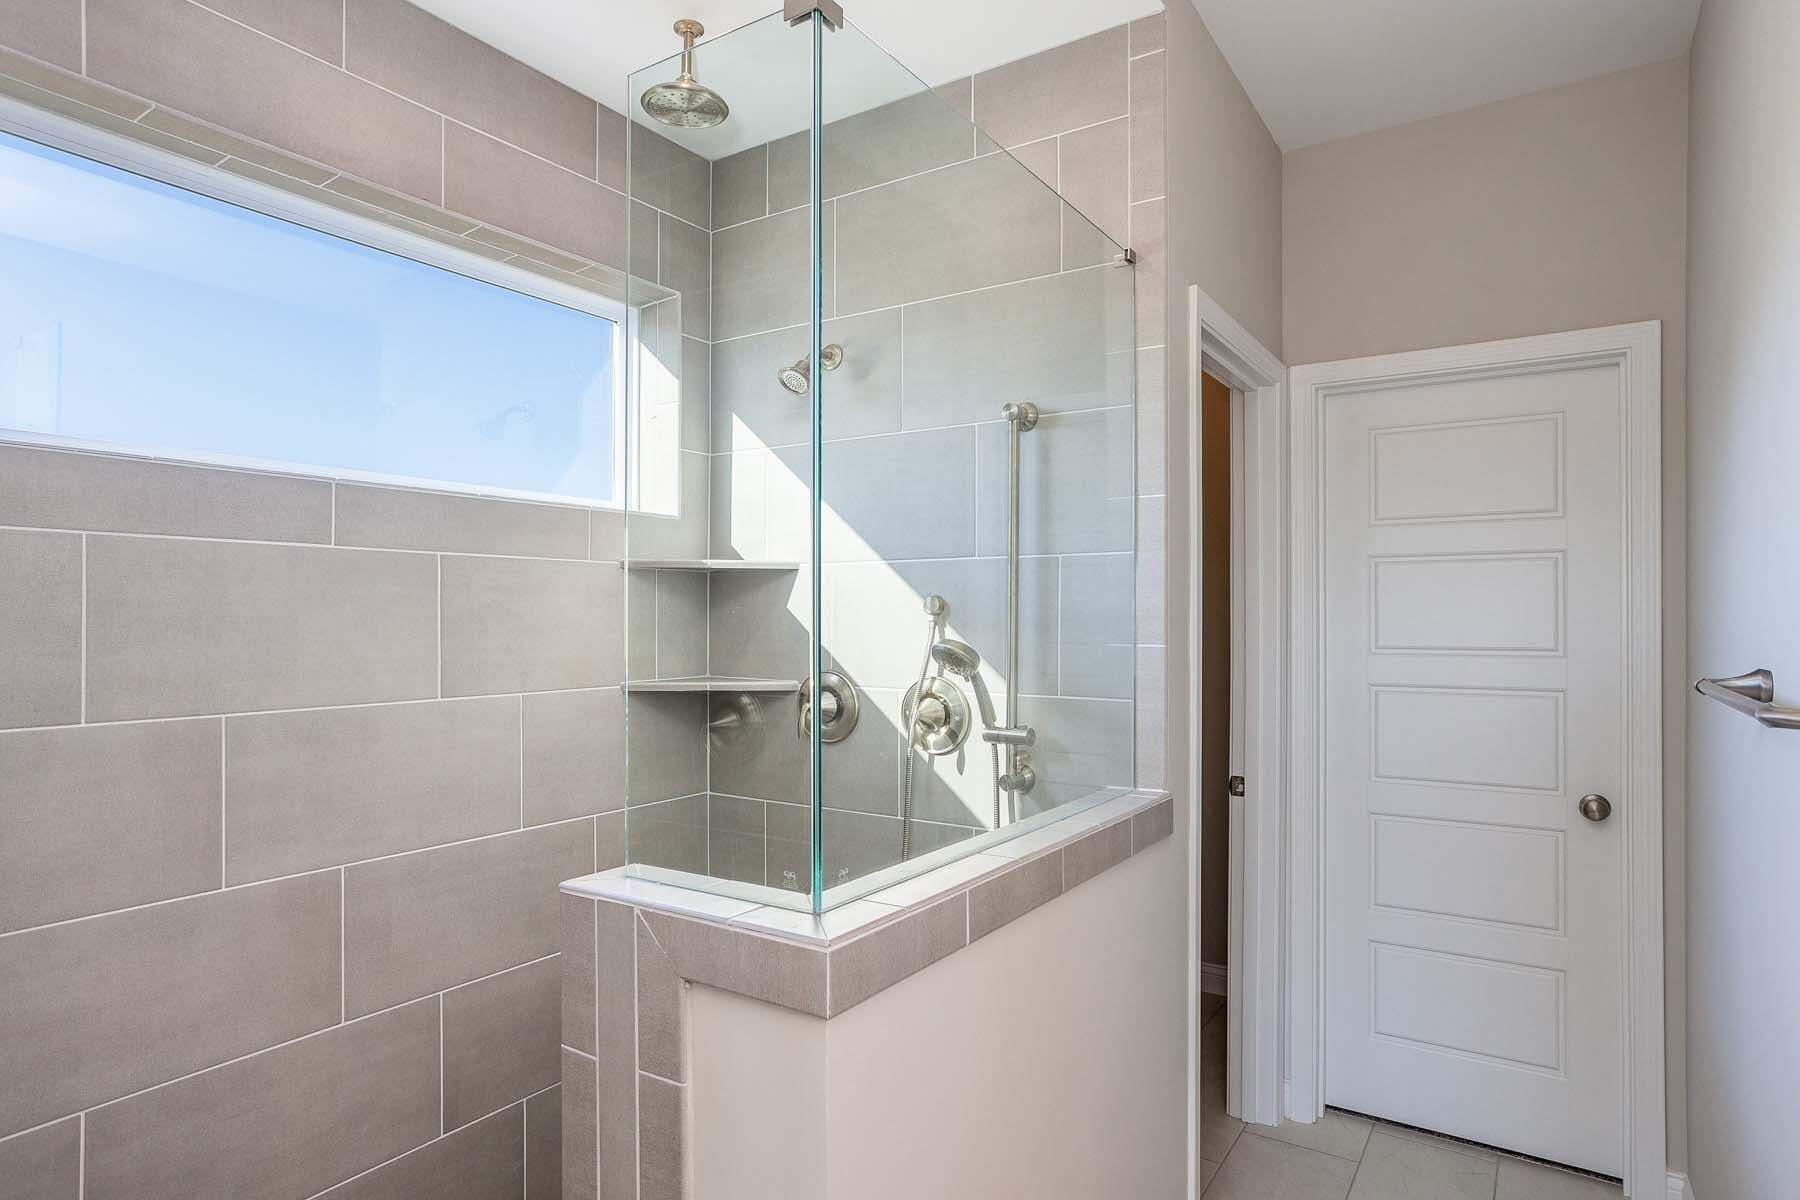 Bathroom featured in the Cheswicke By M/I Homes in Cincinnati, OH